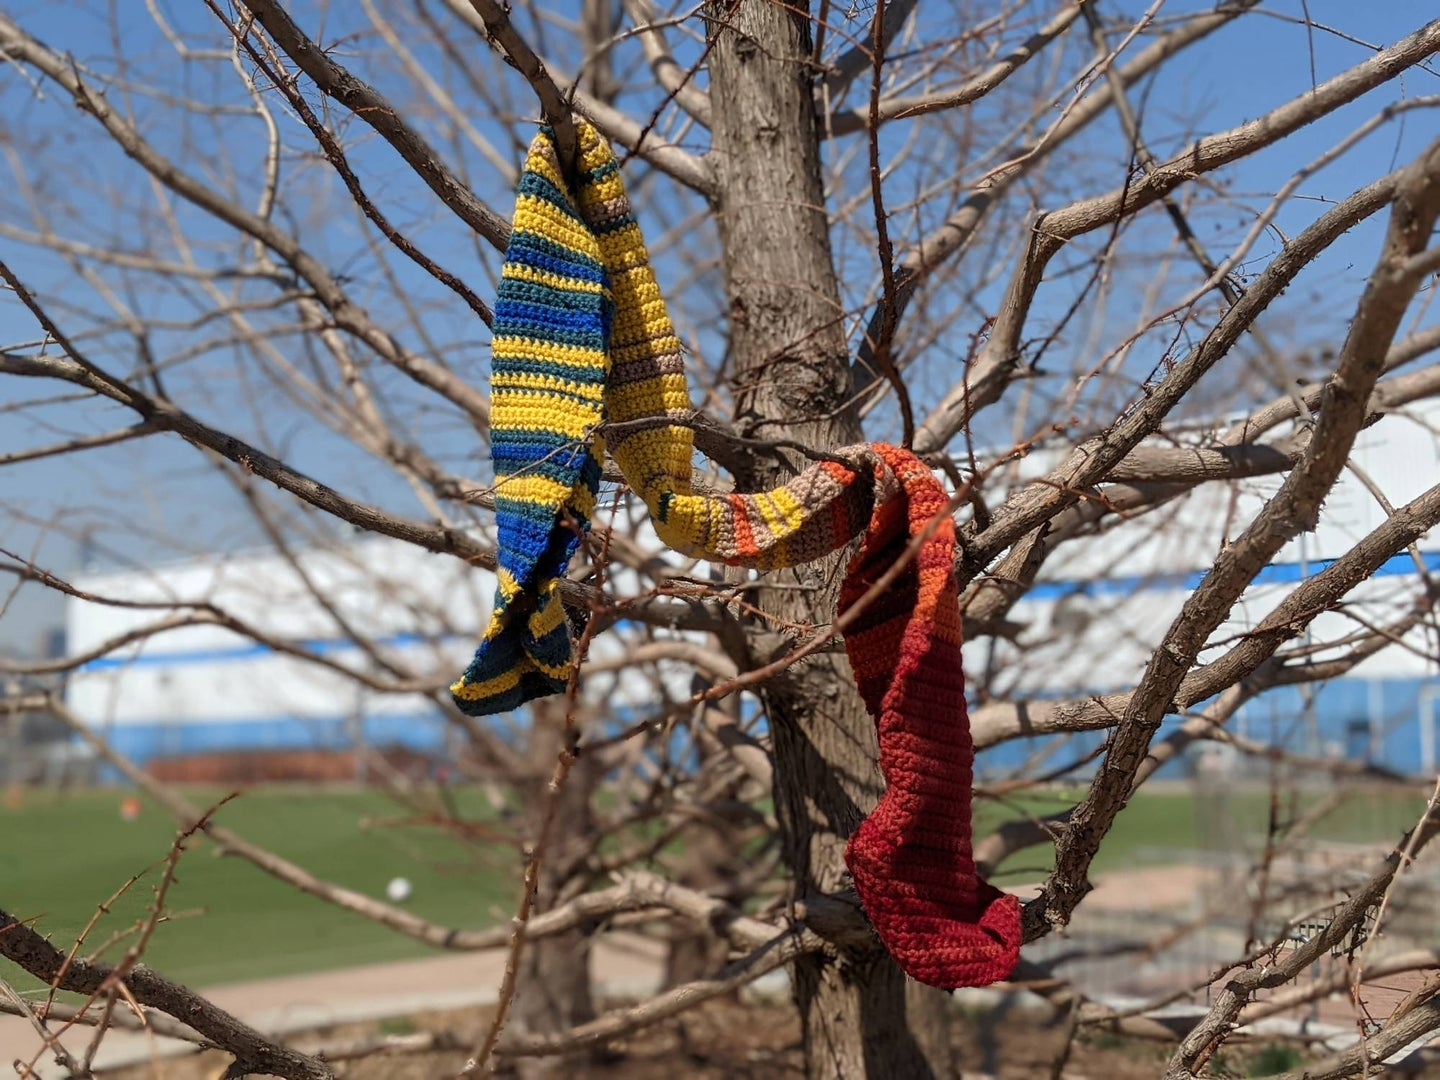 Temperature scarf hanging from a tree